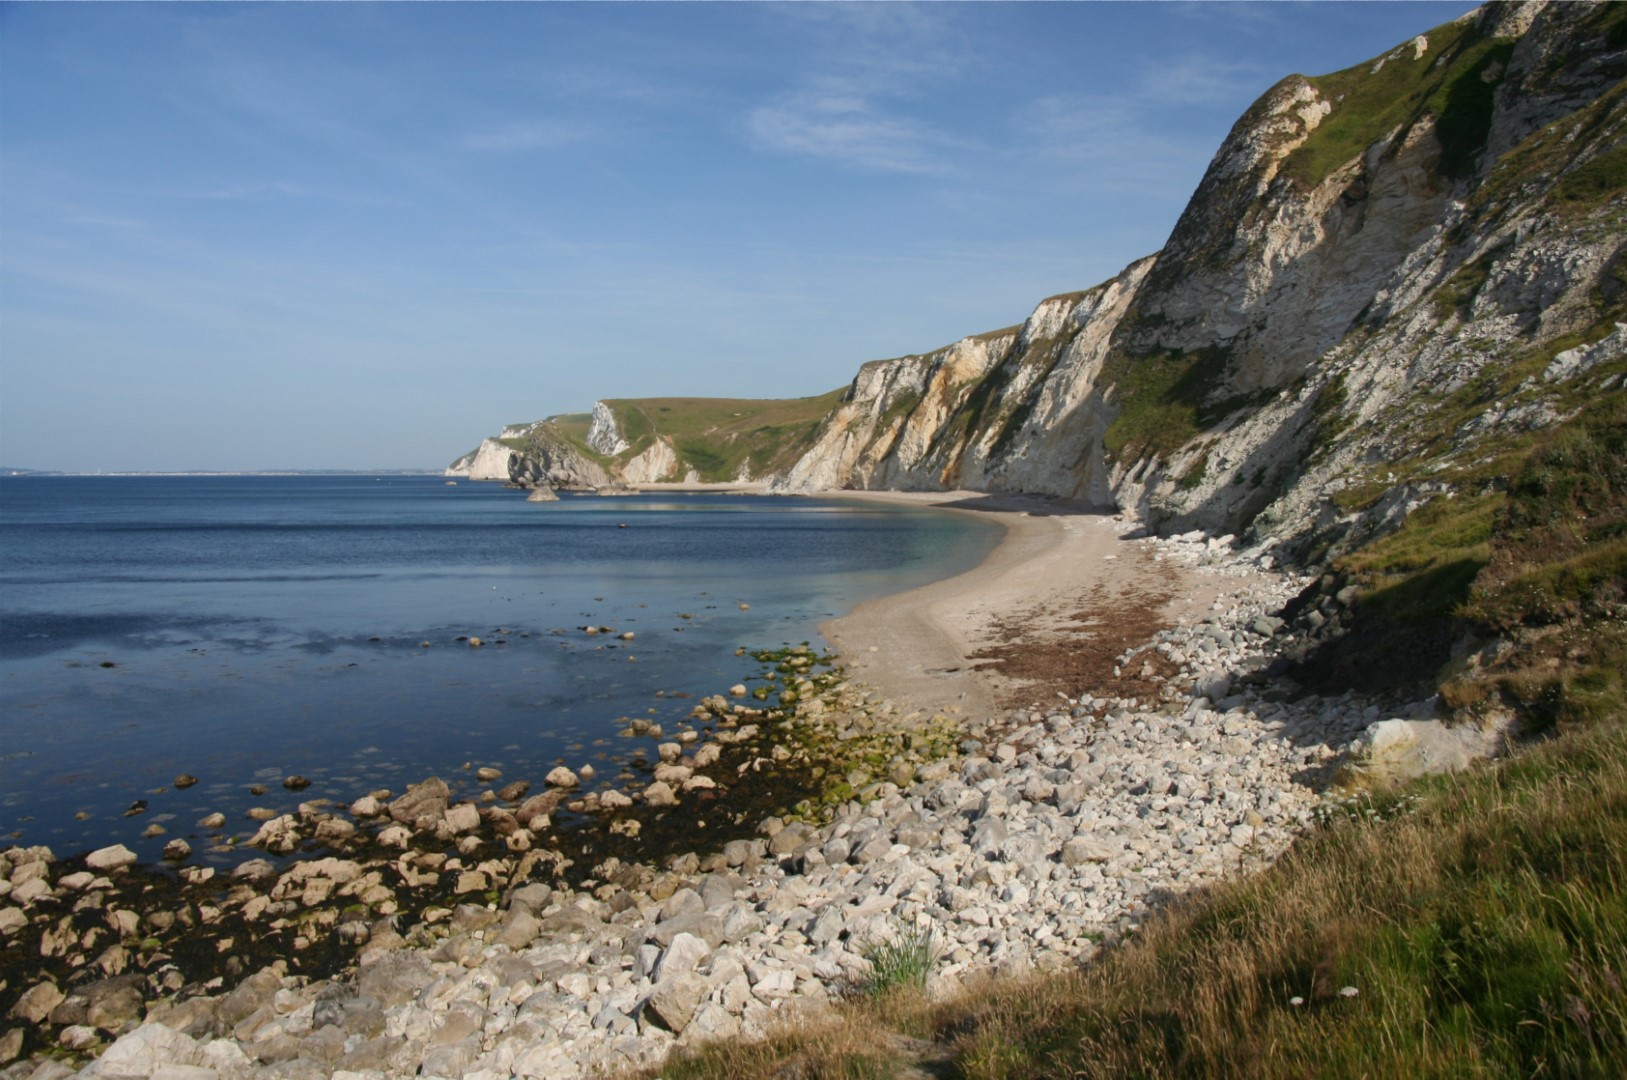 I decided to walk to Durdle Door along the beach but getting there wasn't easy.